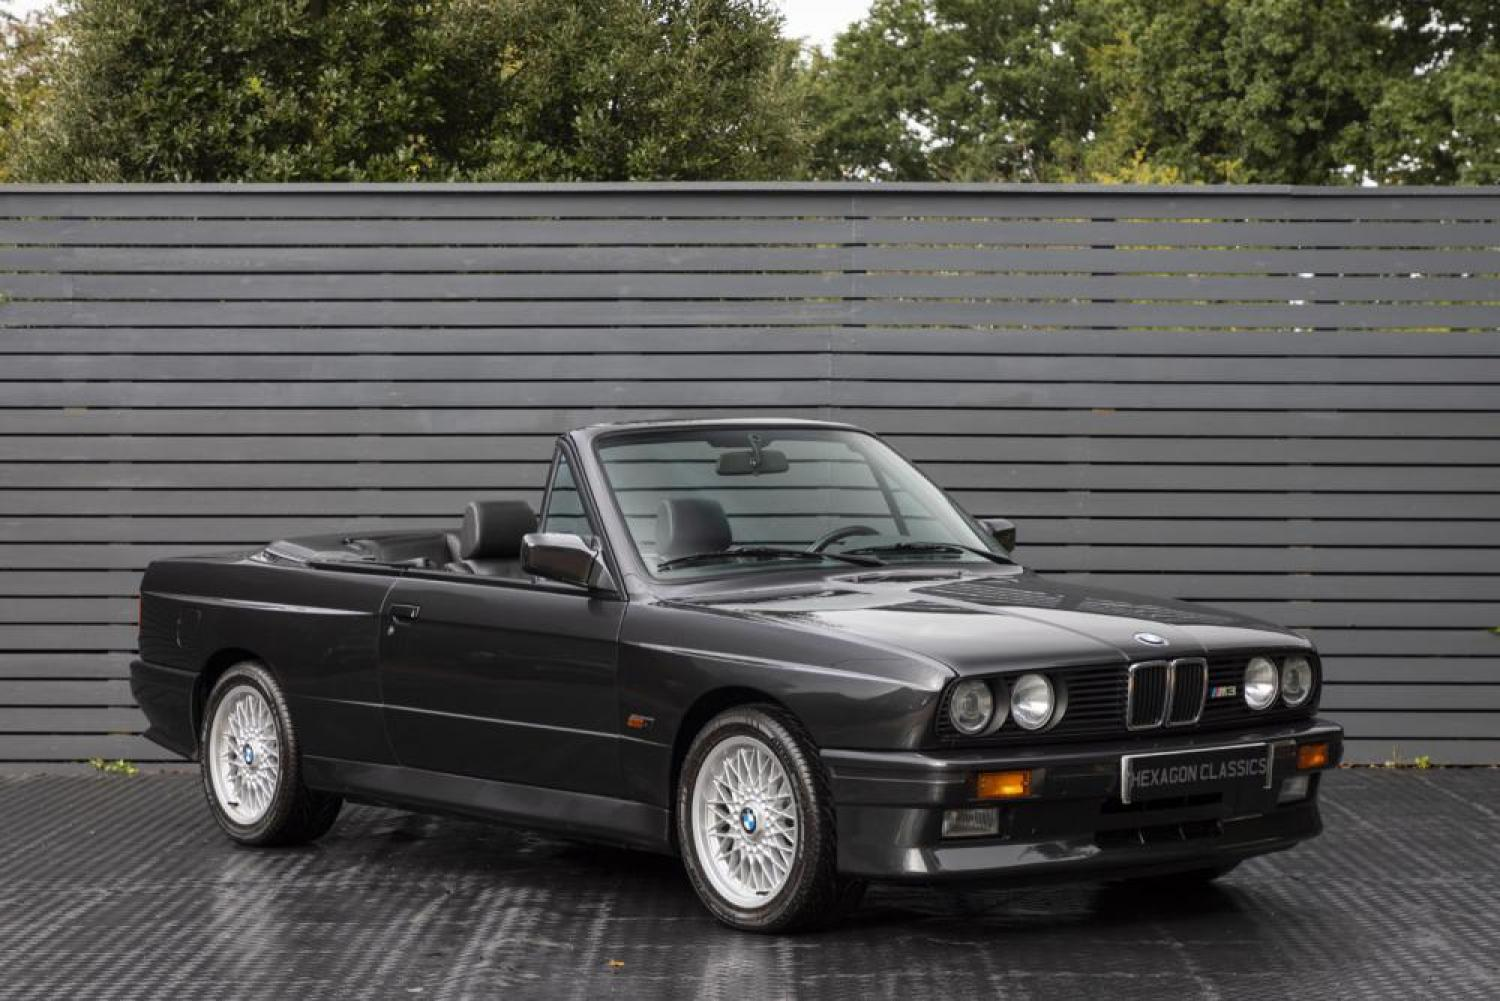 Halogen Light For Cars >> BMW M3 E30 CONVERTIBLE, LHD 1993 | Hexagon, Classic and Modern Cars